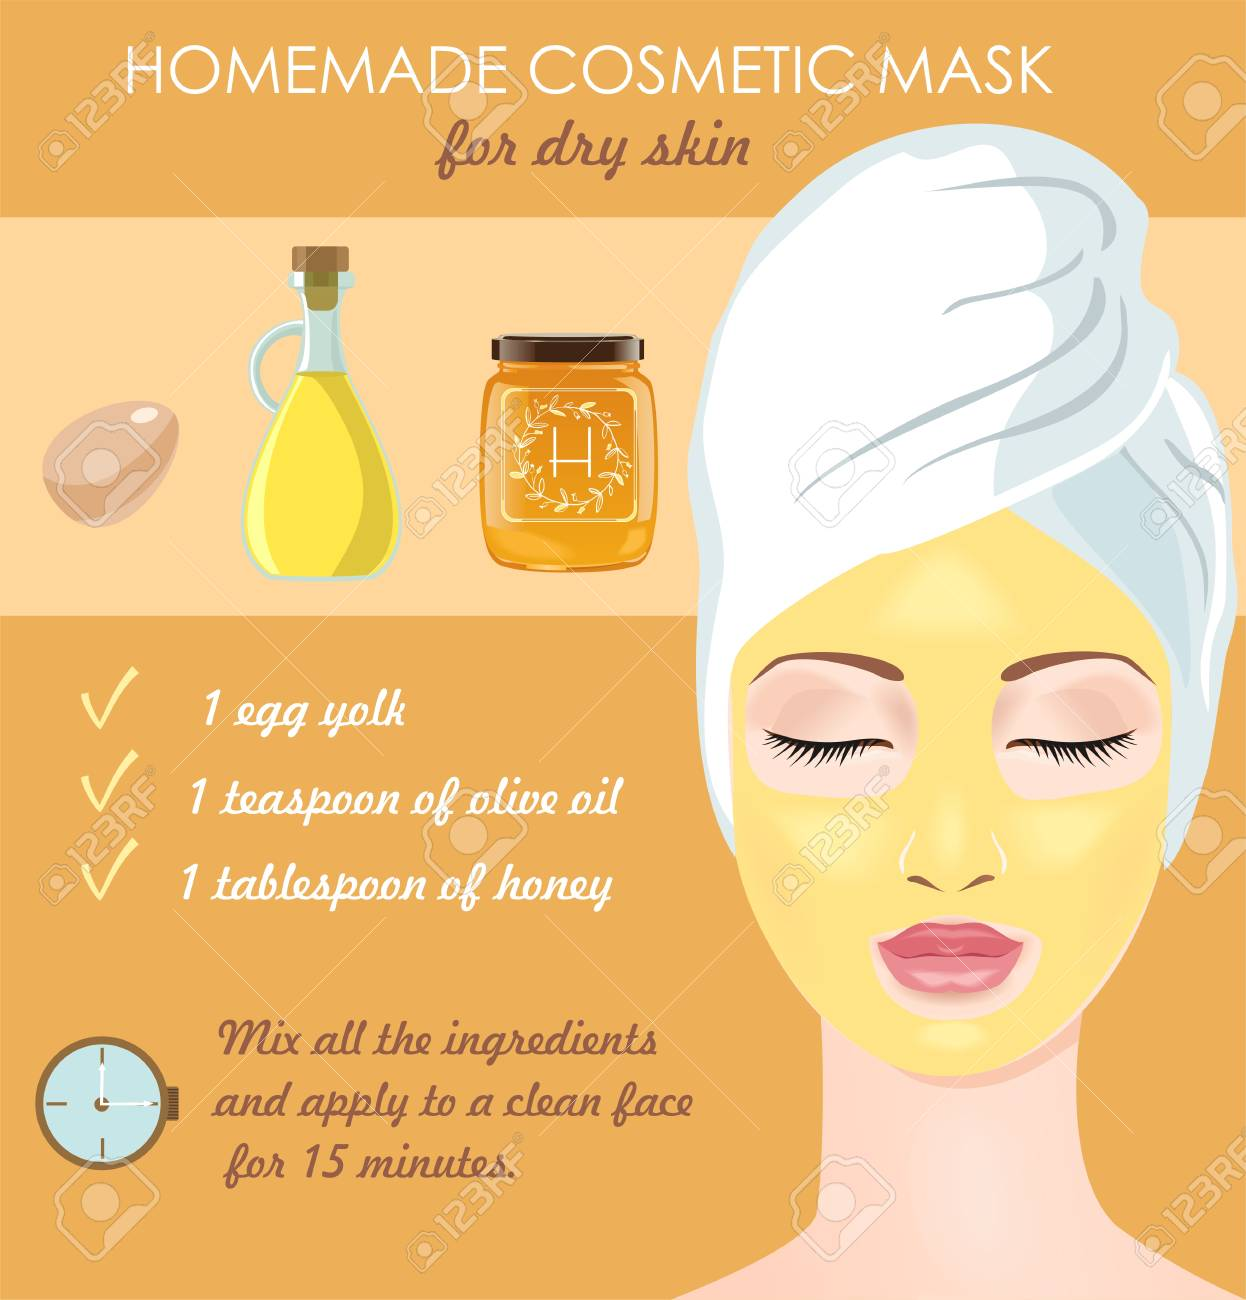 Homemade Cosmetic Mask For Dry Face Skin Egg Yolk Olive Oil Royalty Free Cliparts Vectors And Stock Illustration Image 54271936